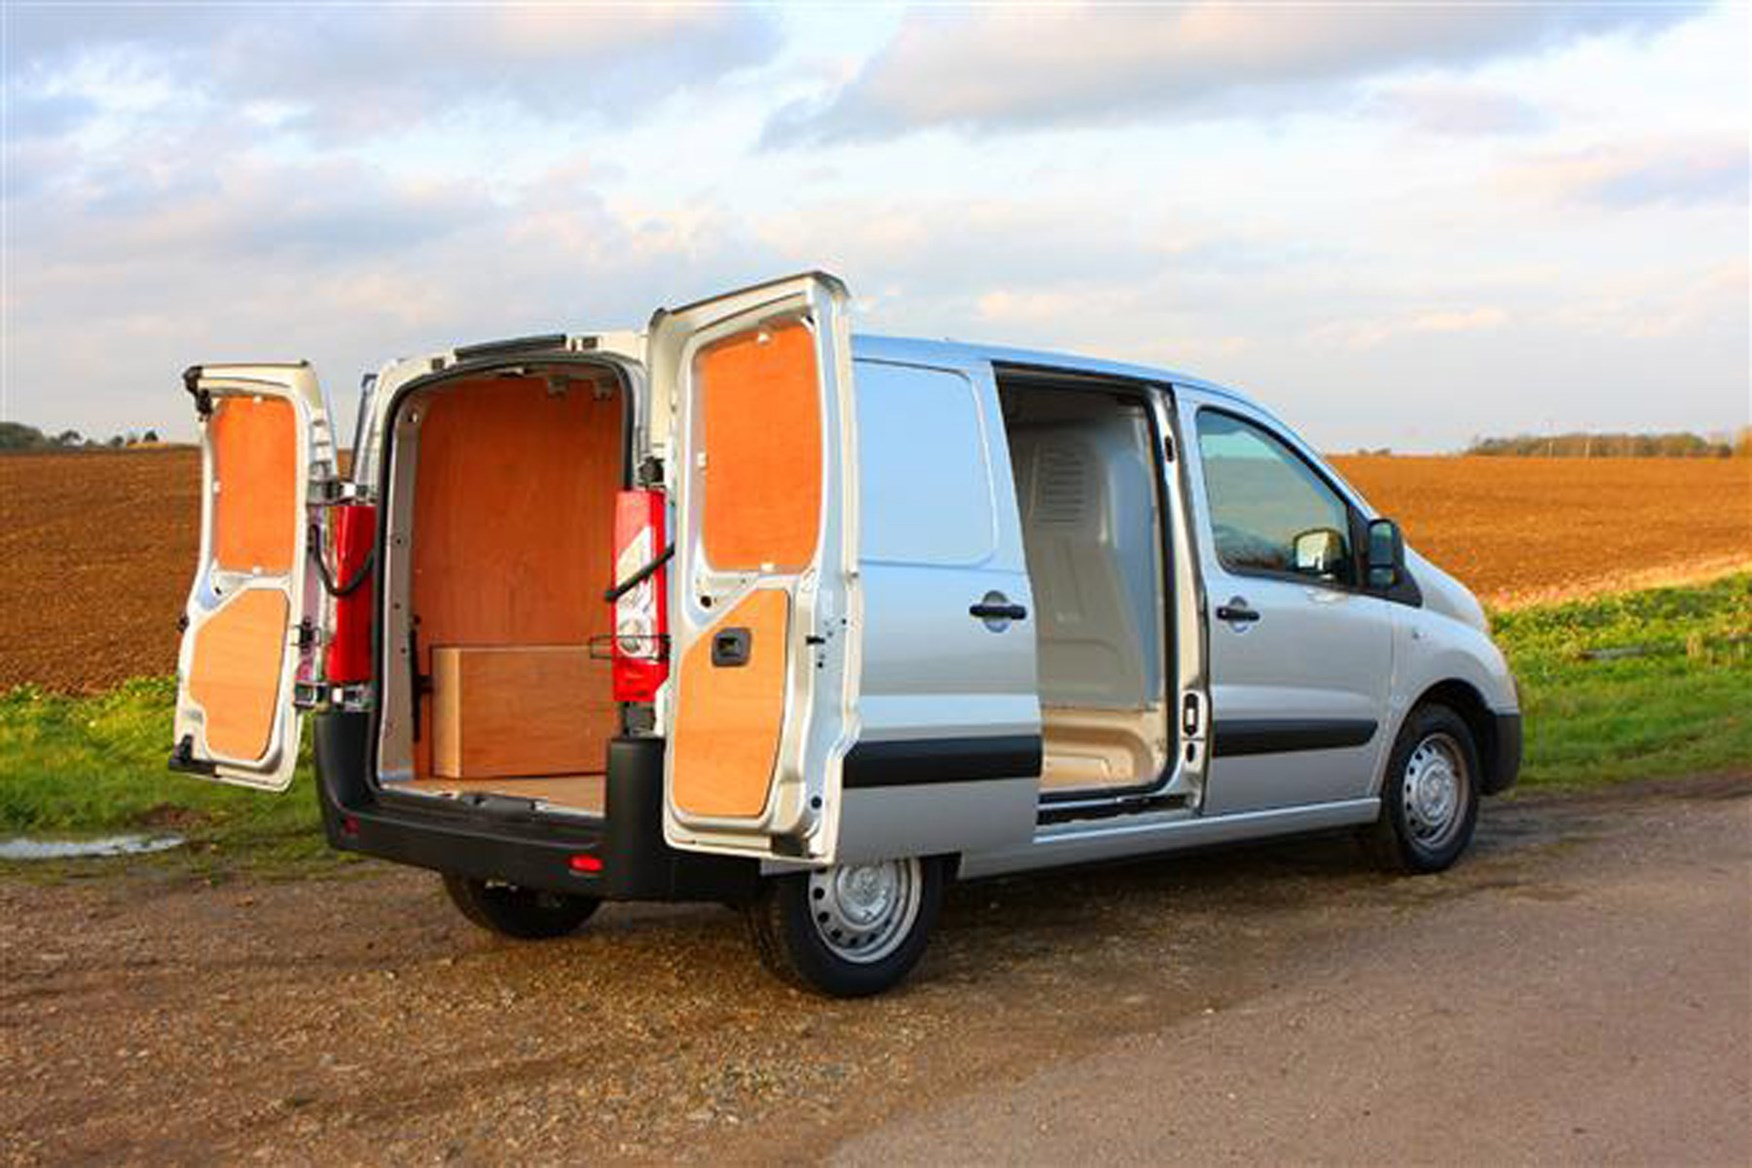 Peugeot Expert 2007-2015 review on Parkers Vans - load area access